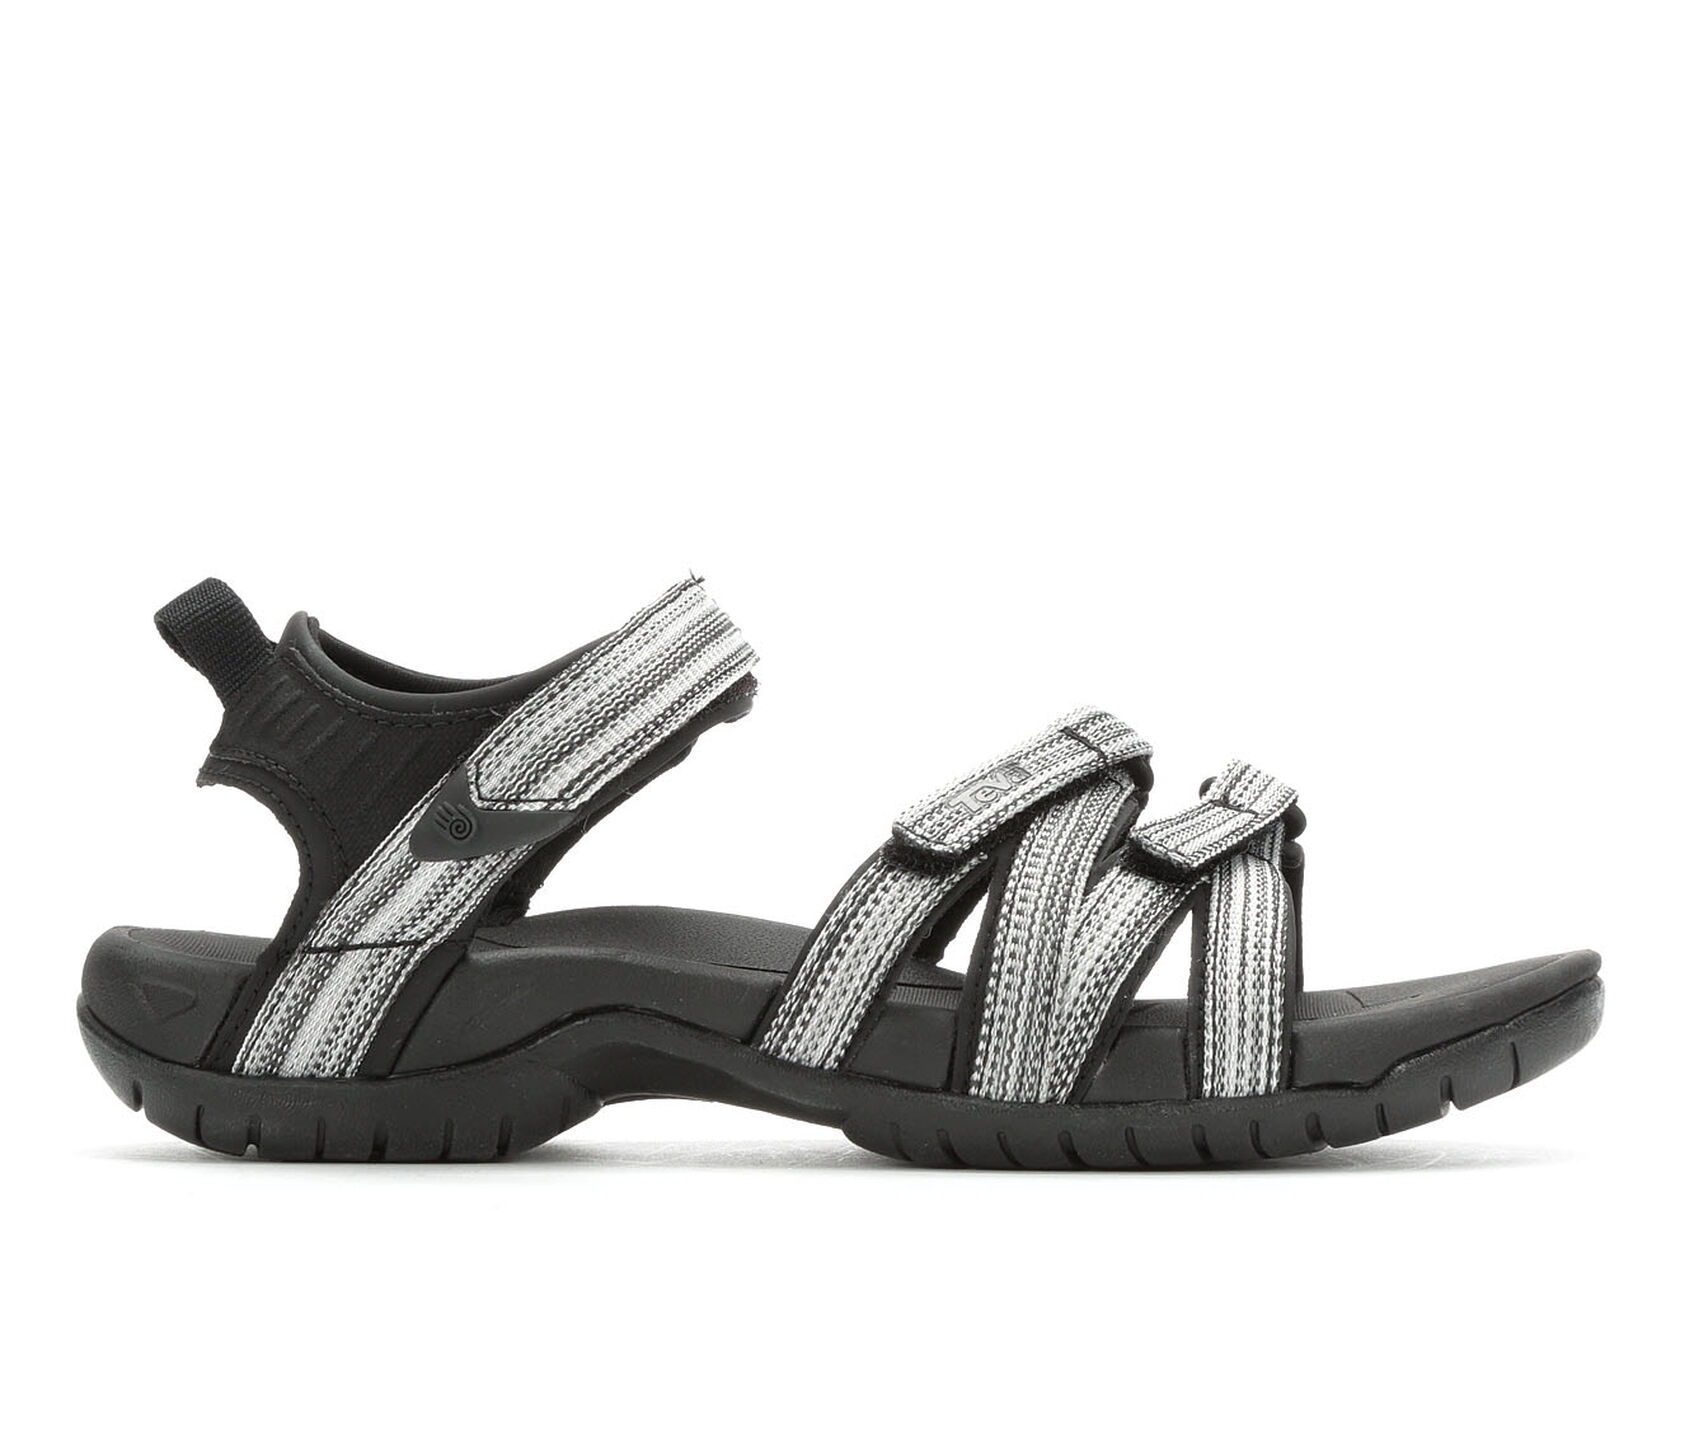 598f46783 ... Teva Tirra Outdoor Sandals. Previous